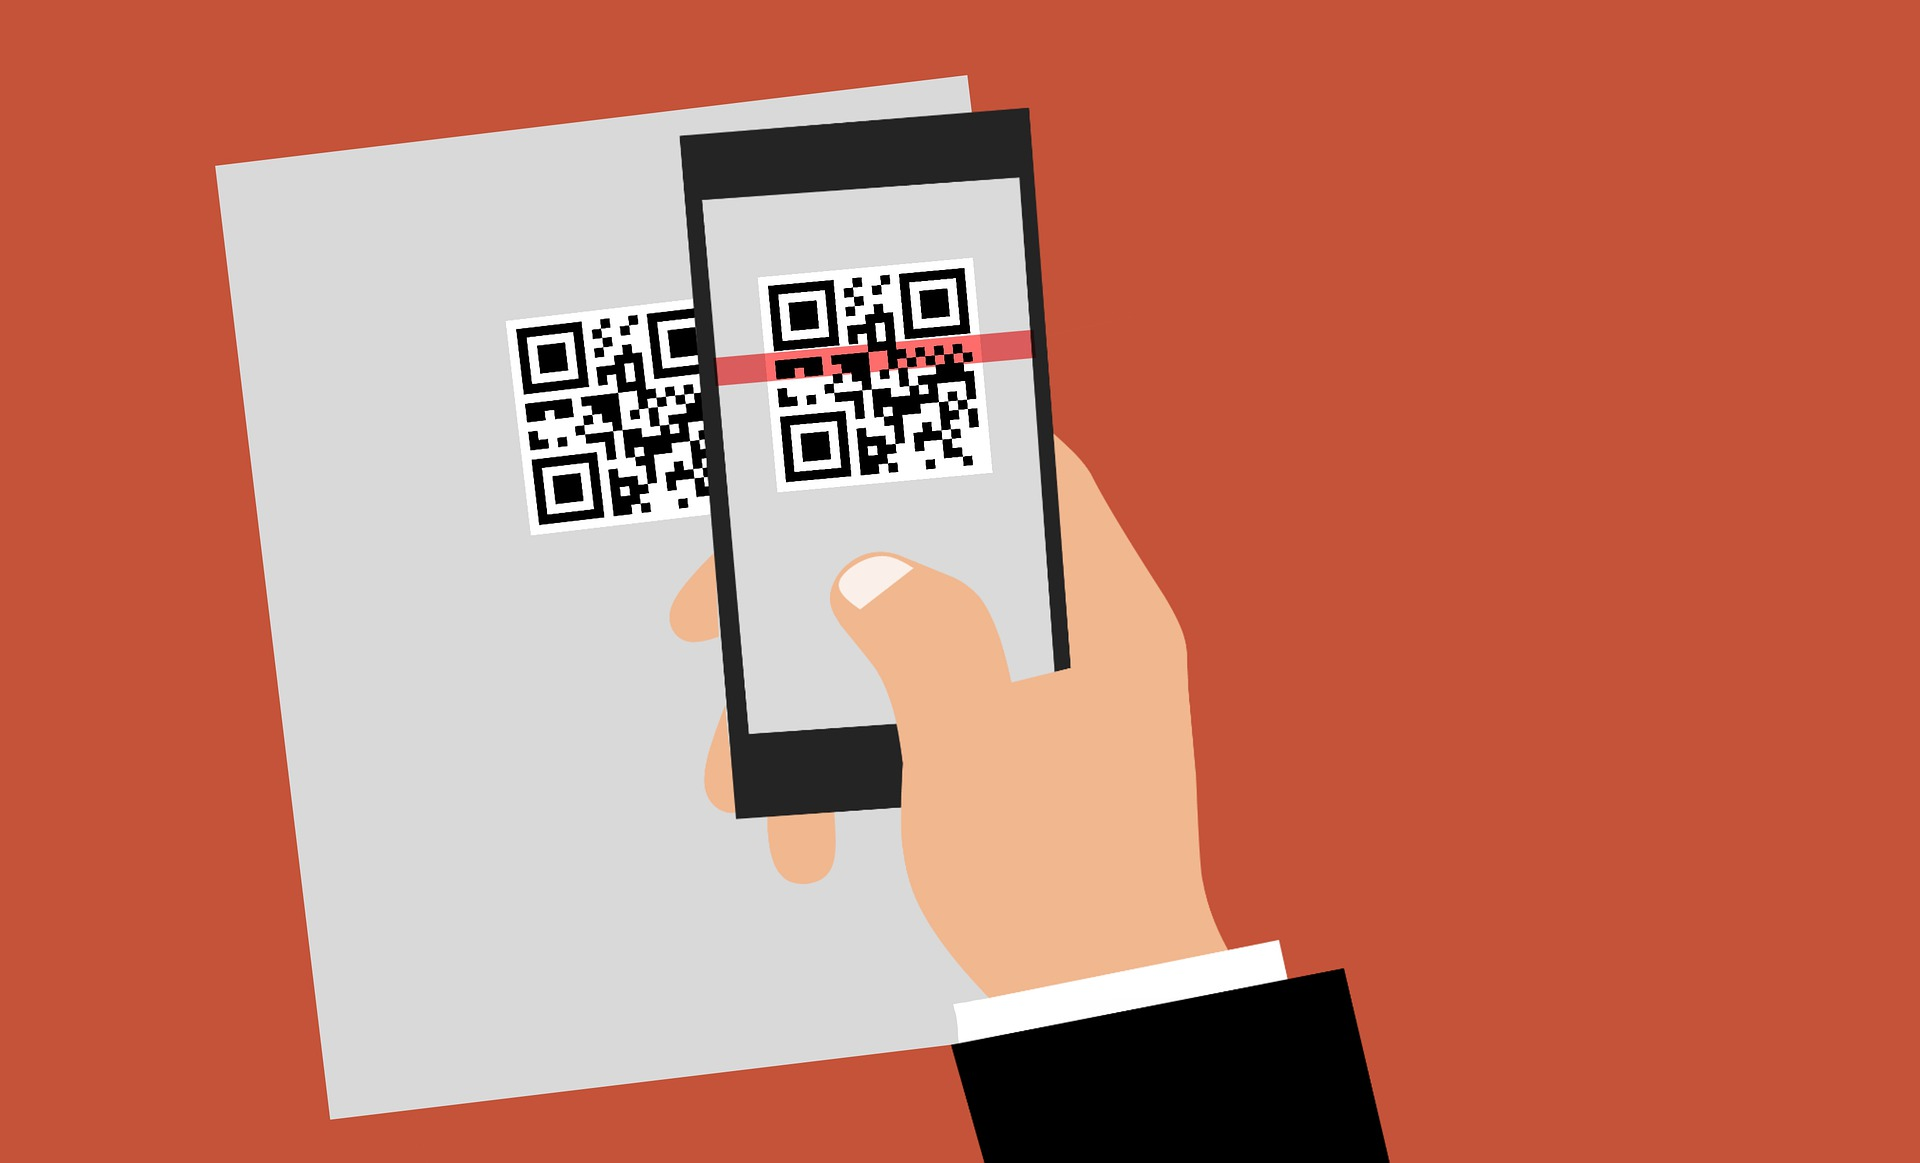 Standardizing QR Codes: ASEAN Fintechs Share Structures through Central Banks